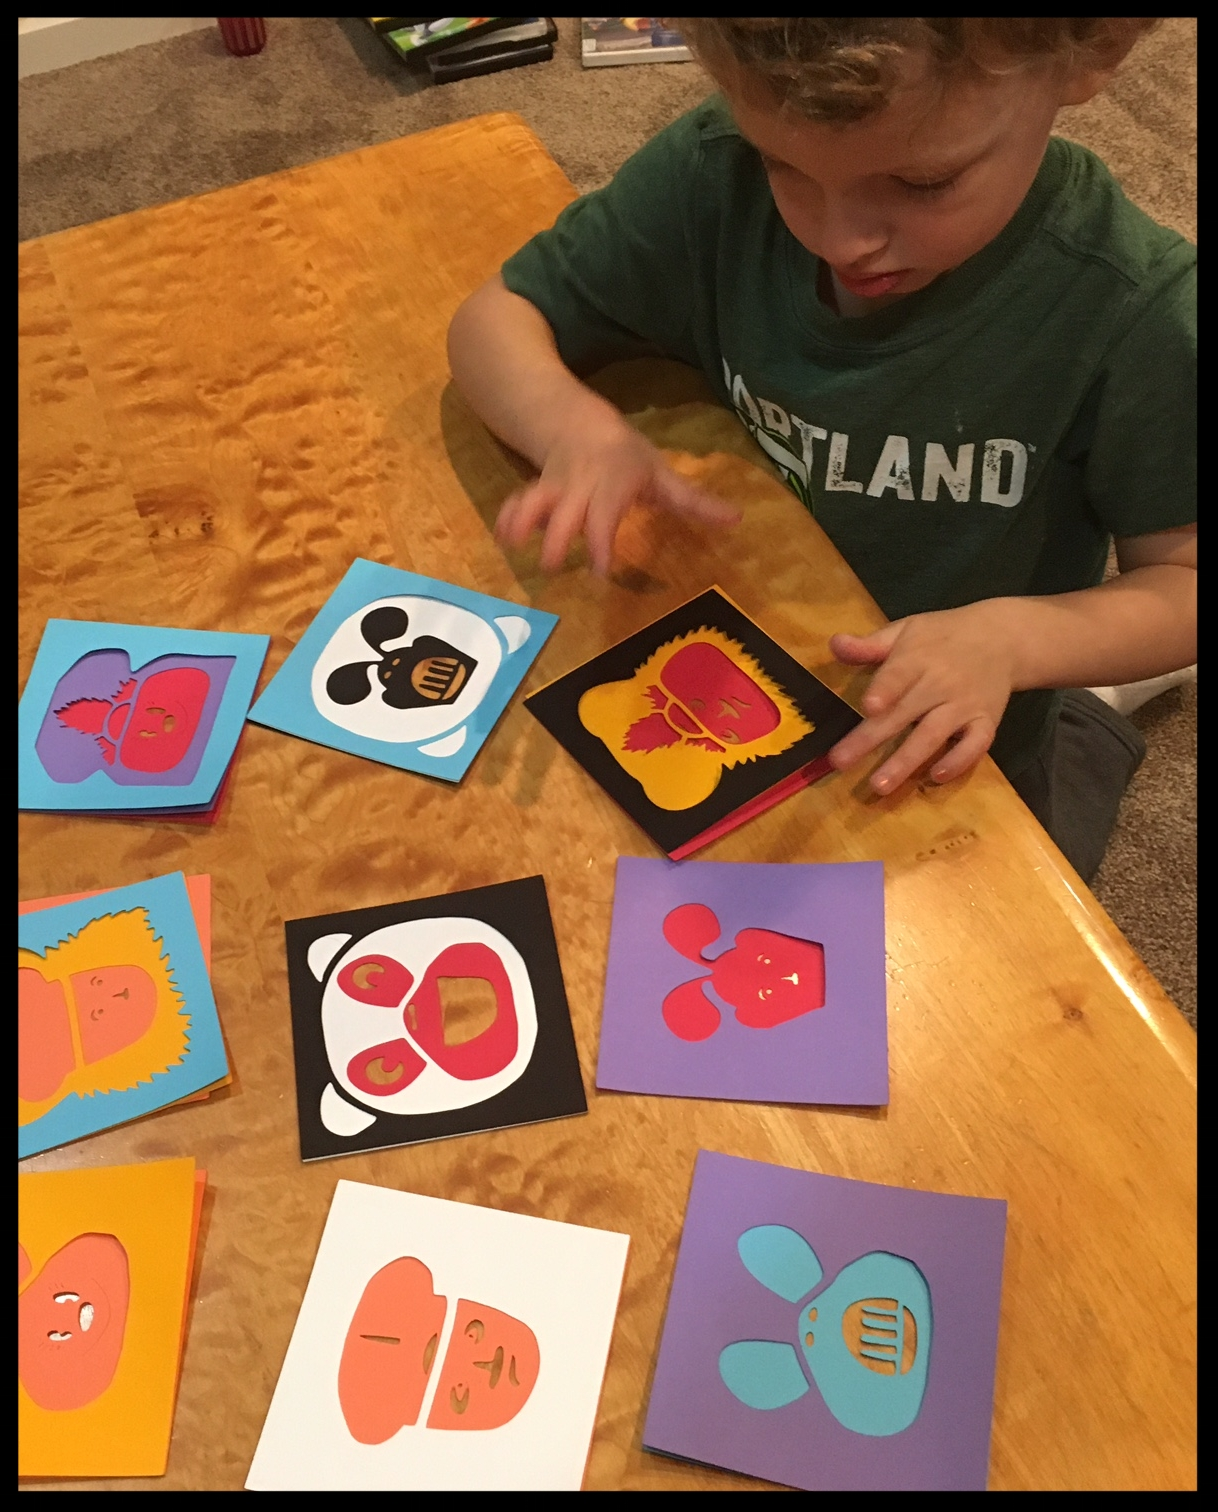 My three year old son interacts with layered paper cuts by mixing and matching designs and colored faces.